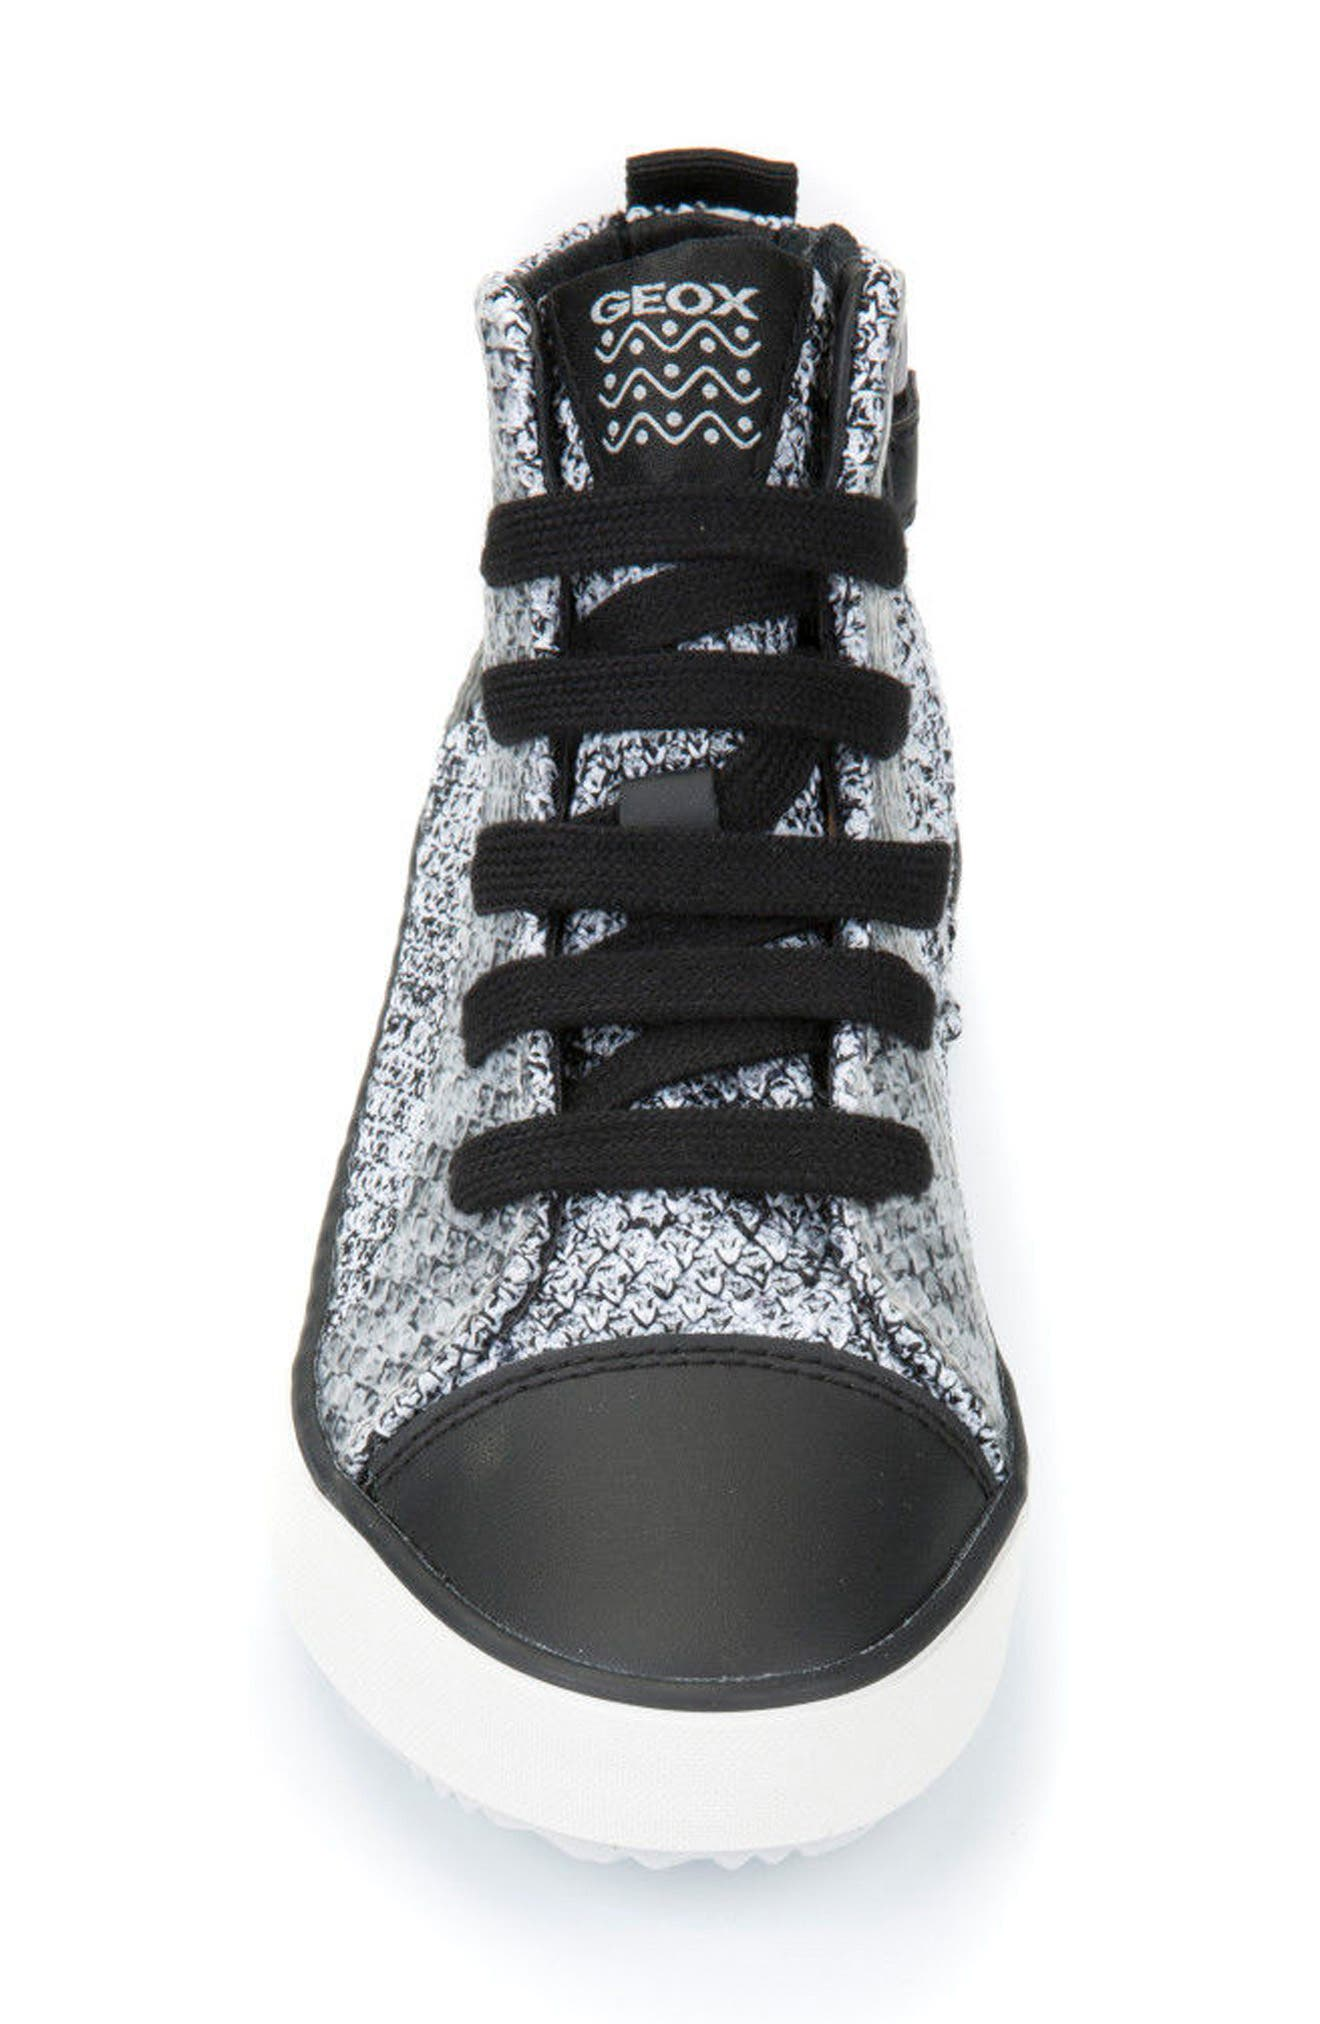 GEOX,                             Alonisso Knit Mid Top Sneaker,                             Alternate thumbnail 4, color,                             115